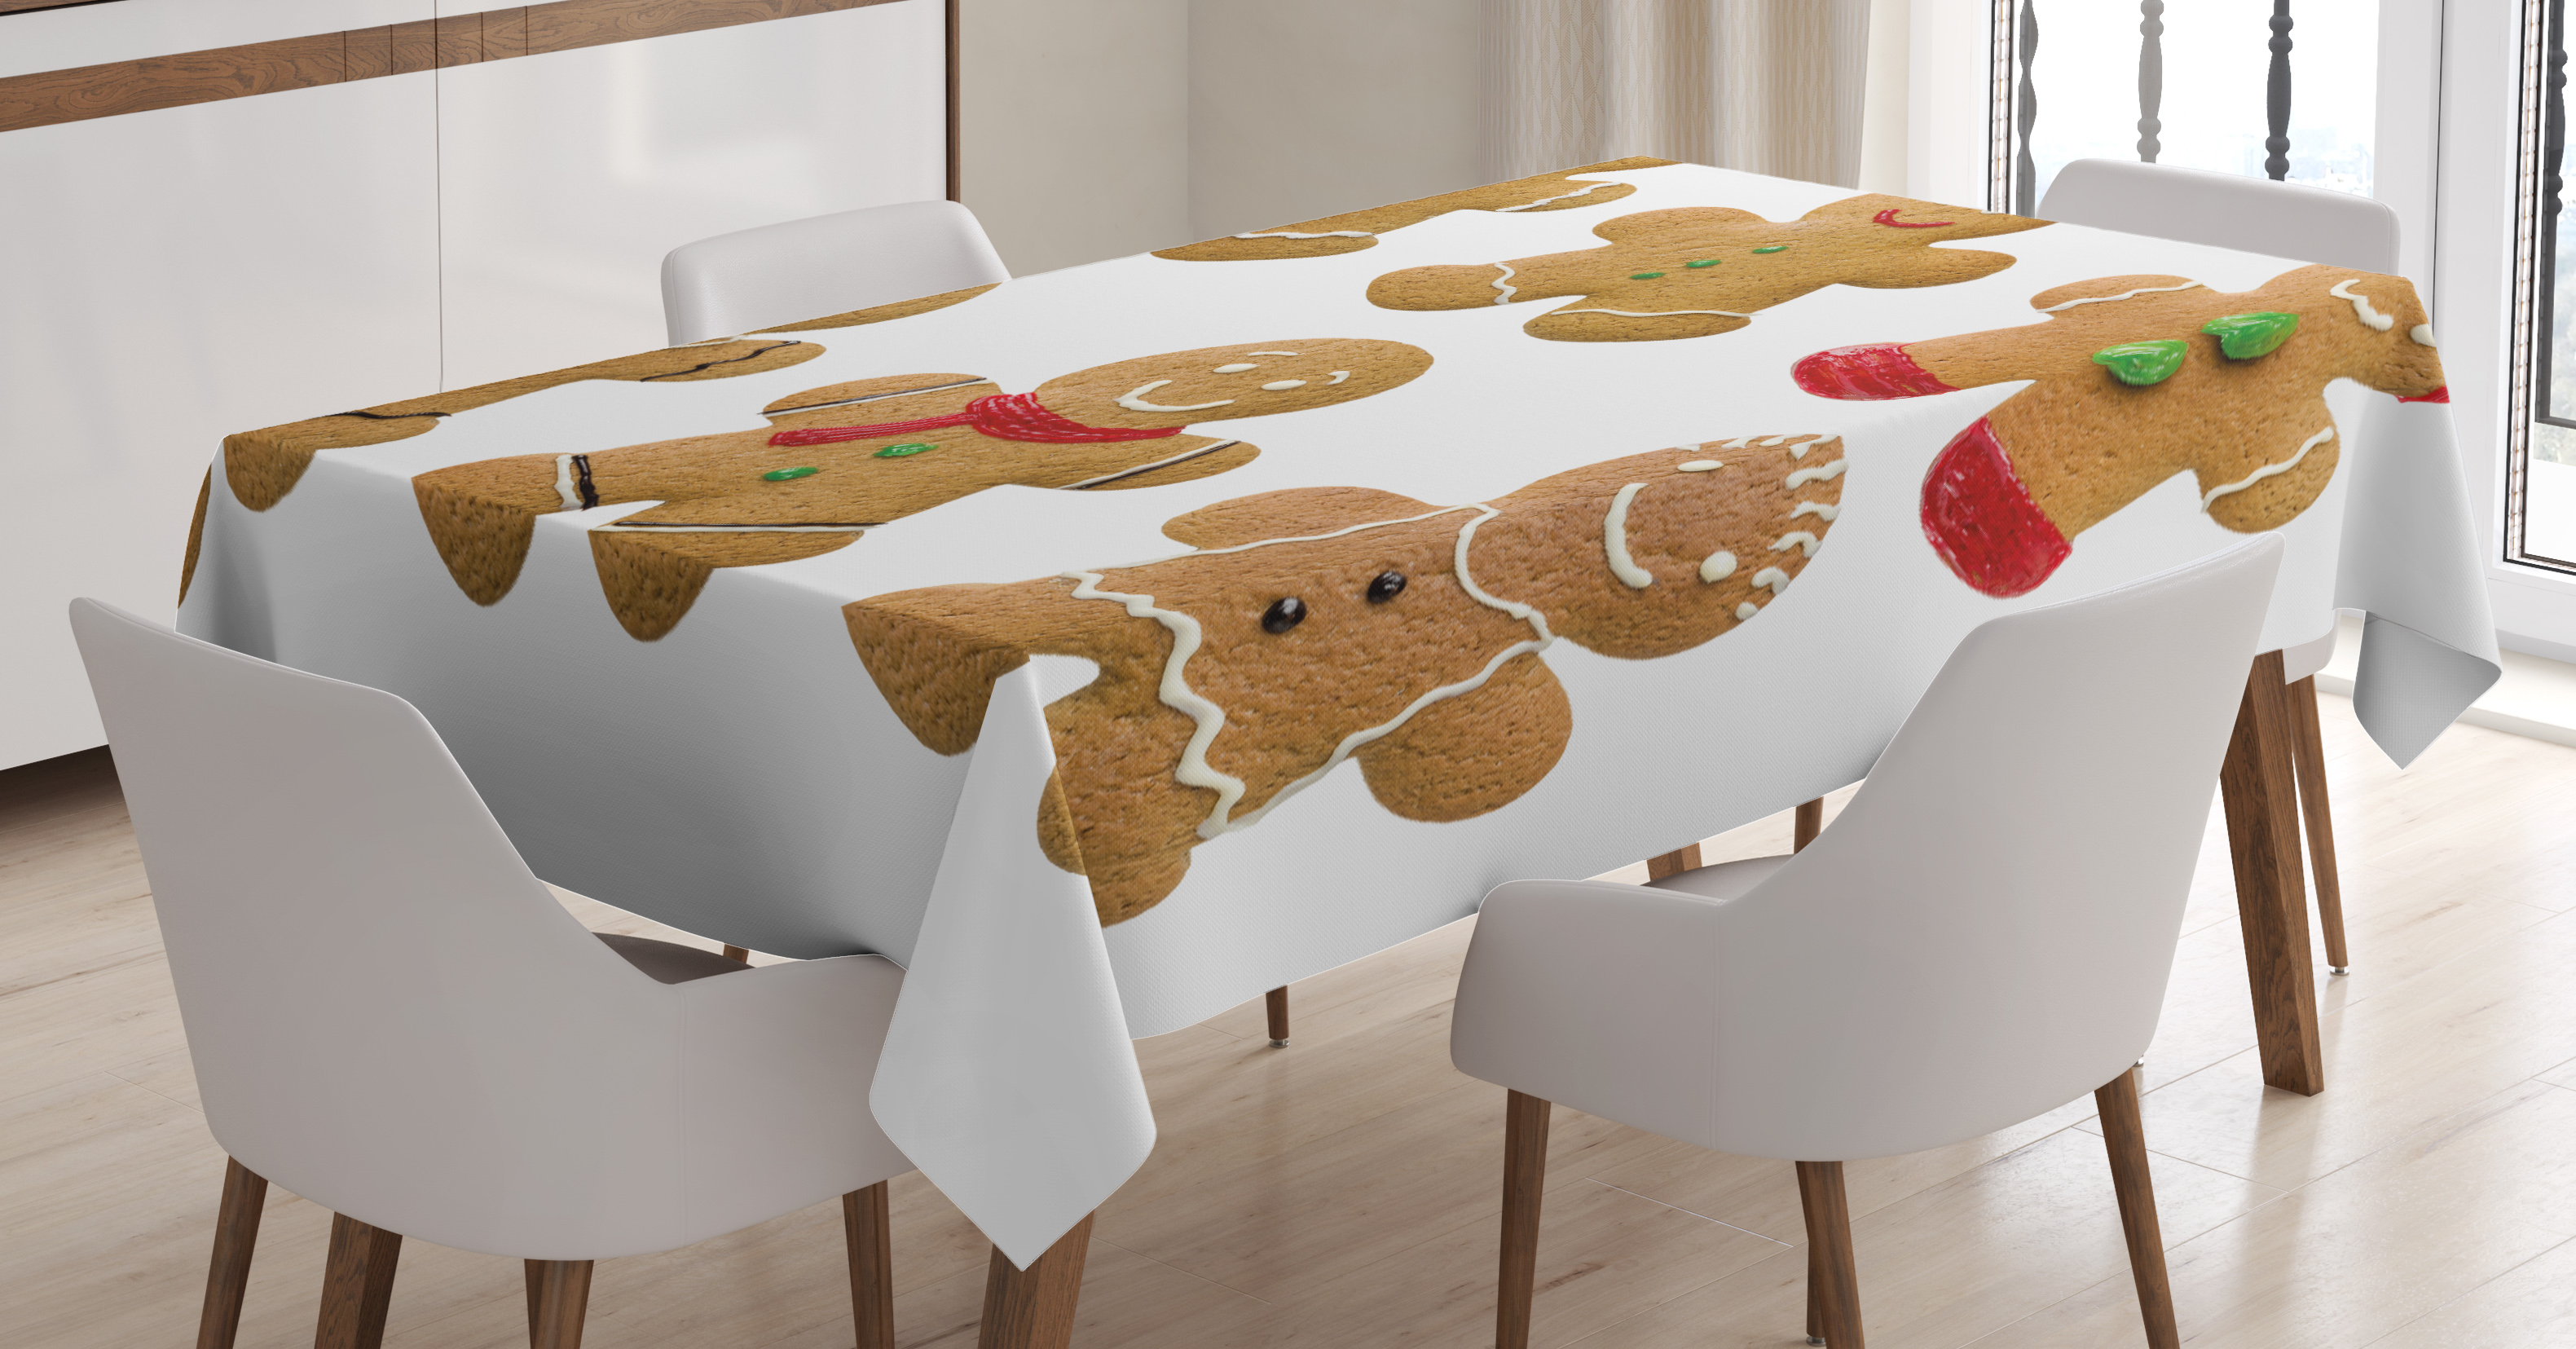 Gingerbread Man Tablecloth, Vivid Homemade Biscuits Sugary Xmas Treats  Sweet Tasty Pastry, Rectangular Table